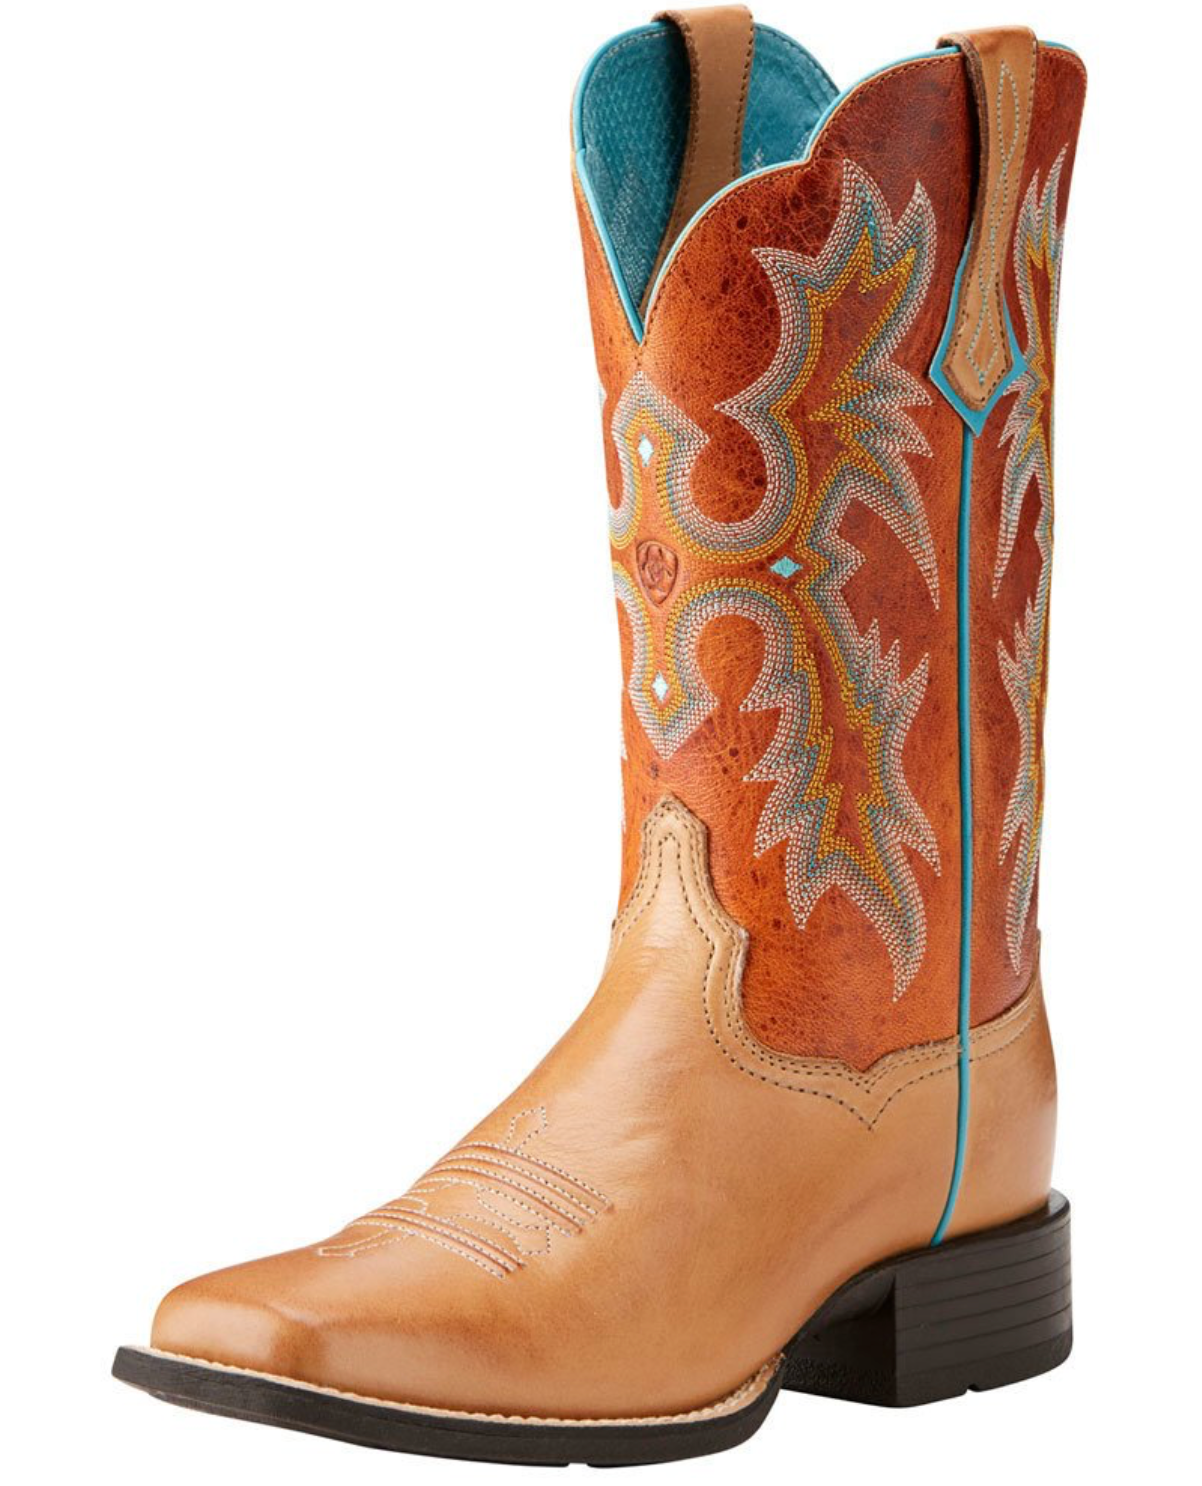 Ariat Womens Tombstone Rum Honey size 5.5B - FINAL SALE